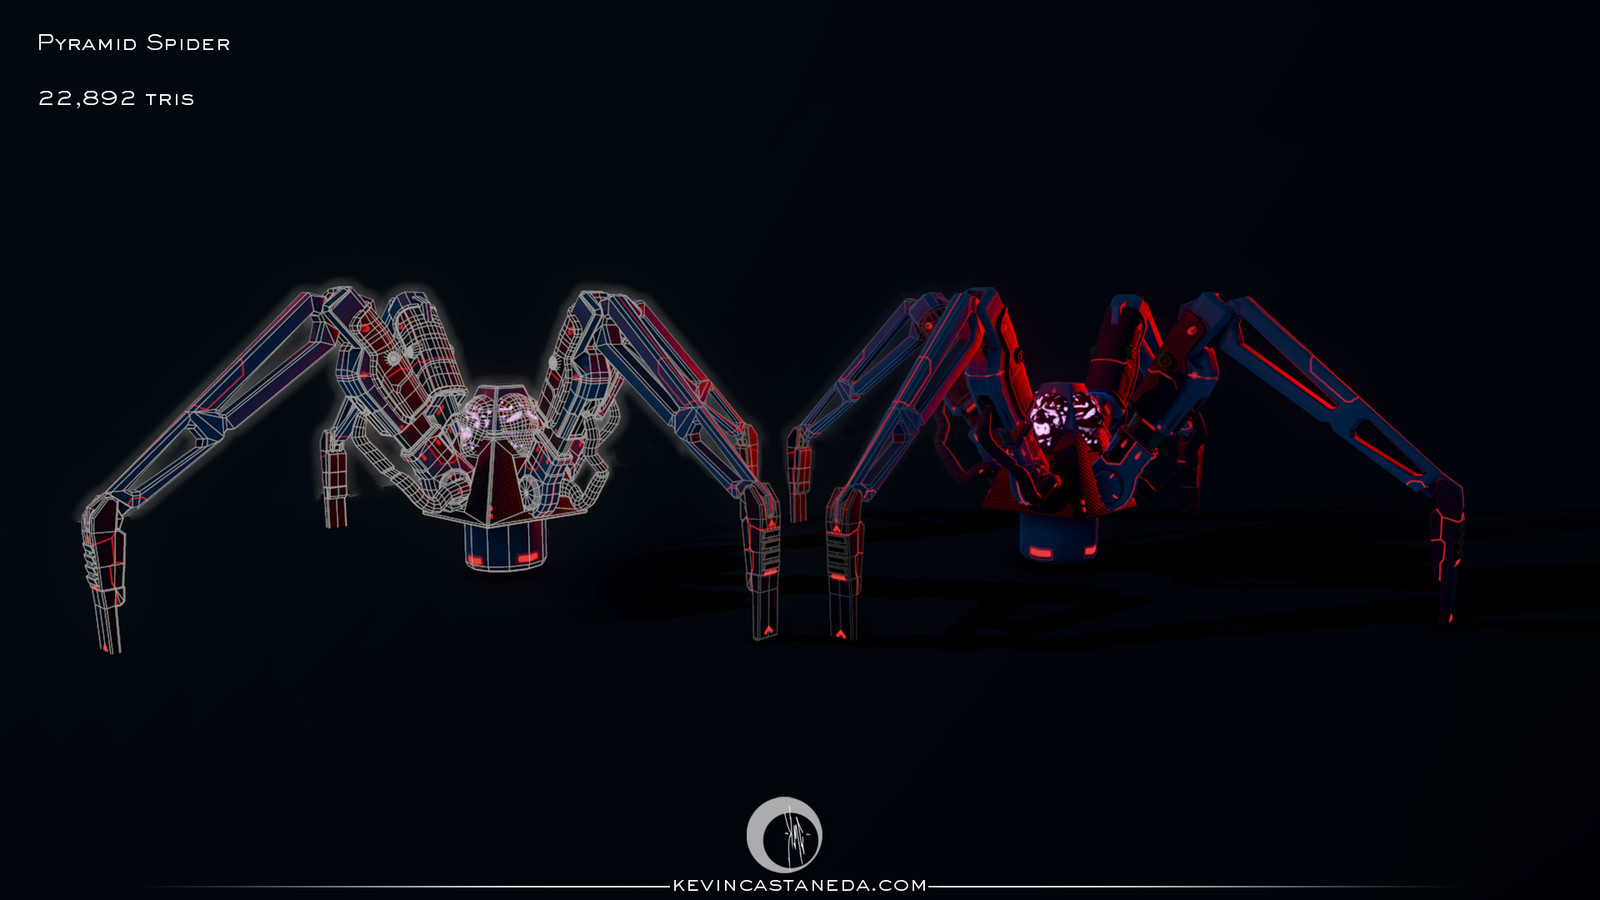 Pyramid Spider with wireframe example.